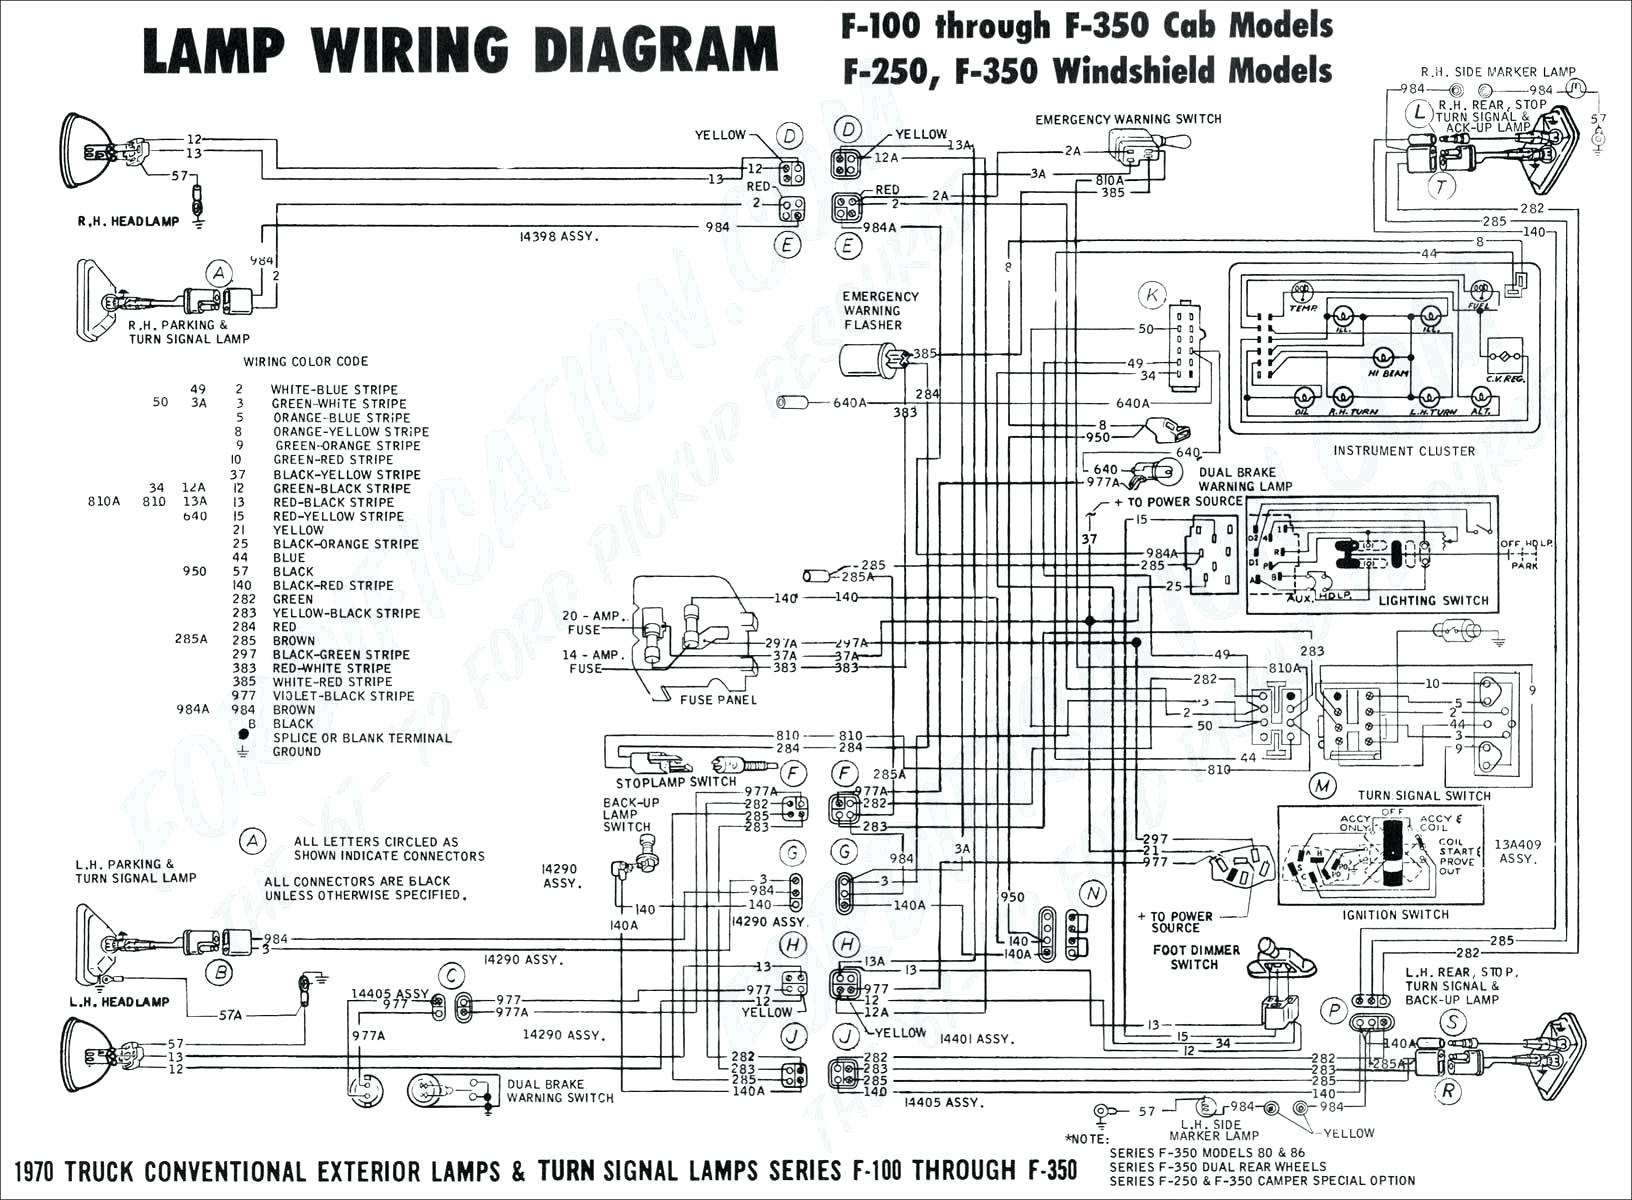 1999 Miata Radio Wiring Diagram Library. 1999 Mazda Miata Engine Diagram Partment Additionally International Wiring Of. Morgan. Morgan Olson Wiring Diagrams 2006 At Scoala.co